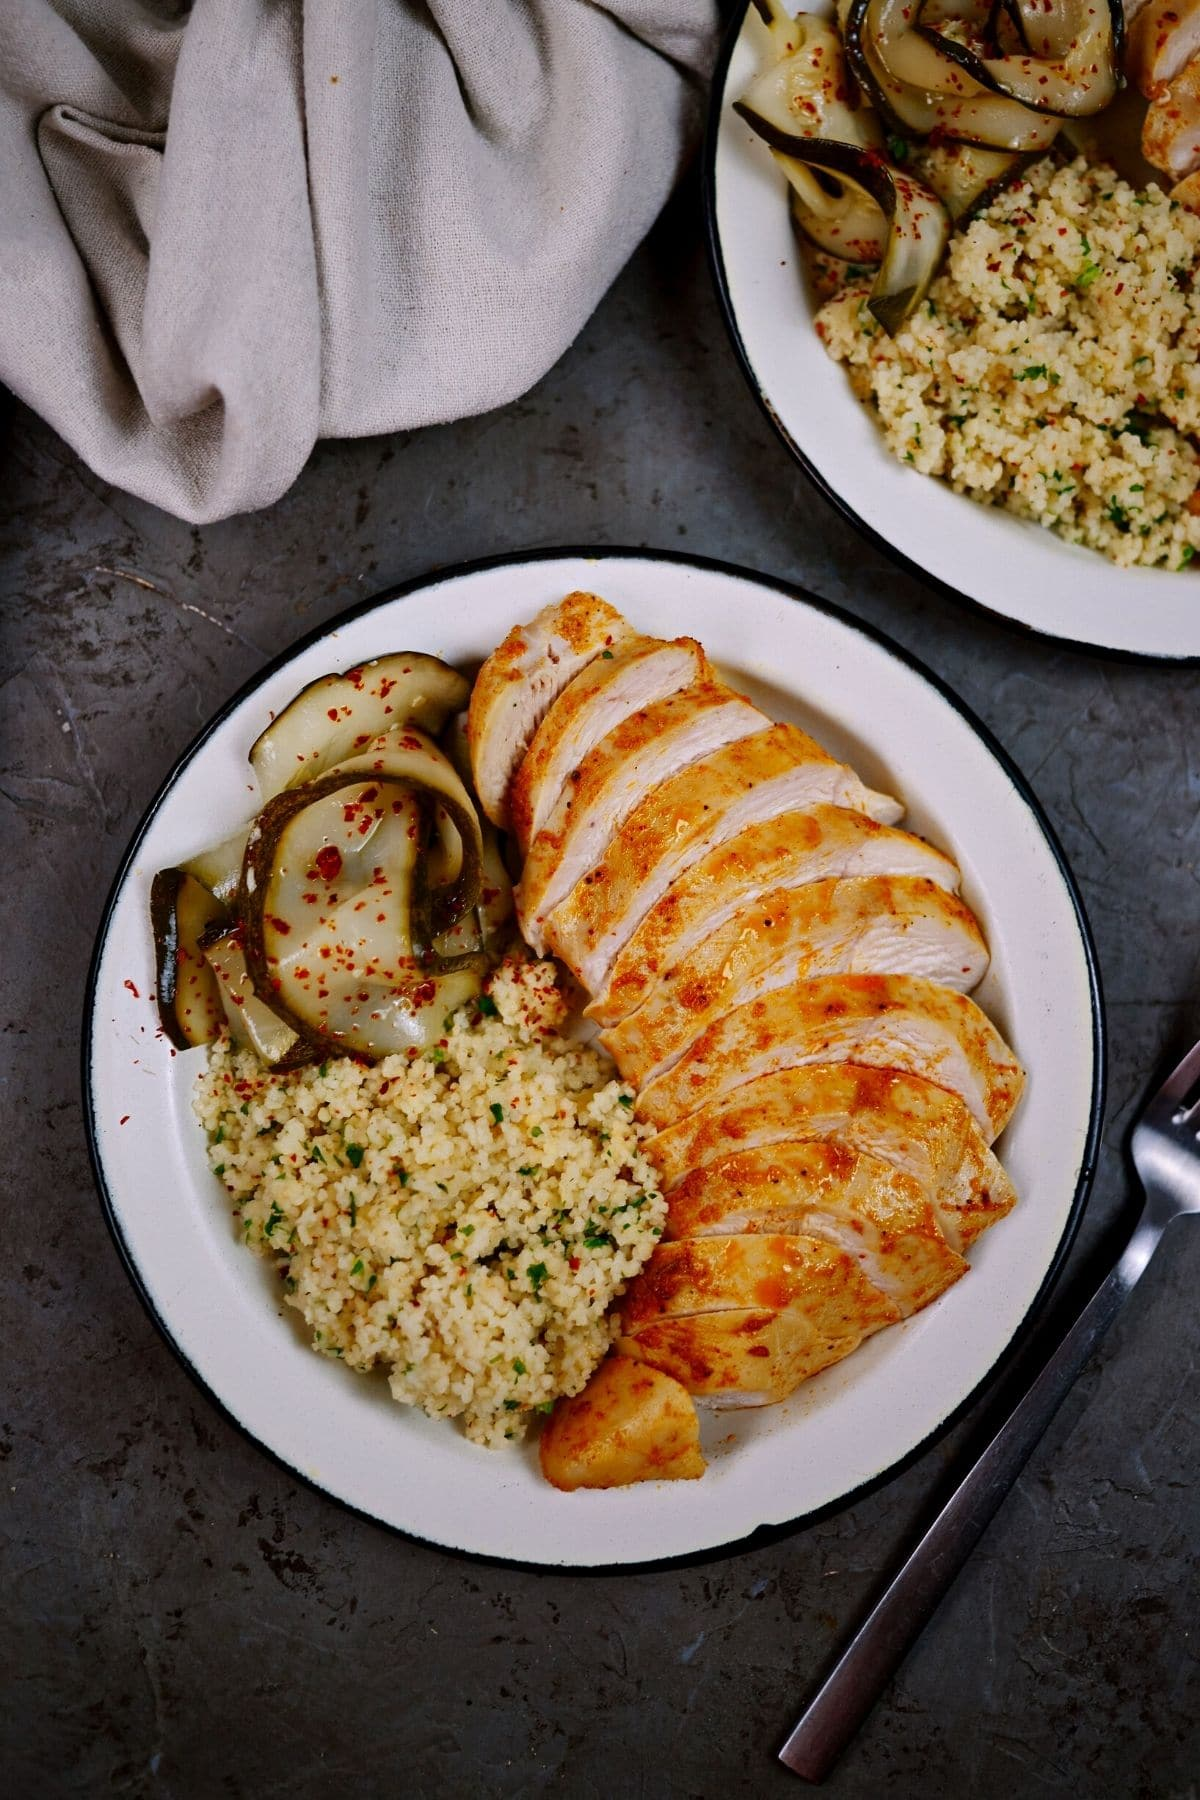 Two plates of chicken and rice on gray table